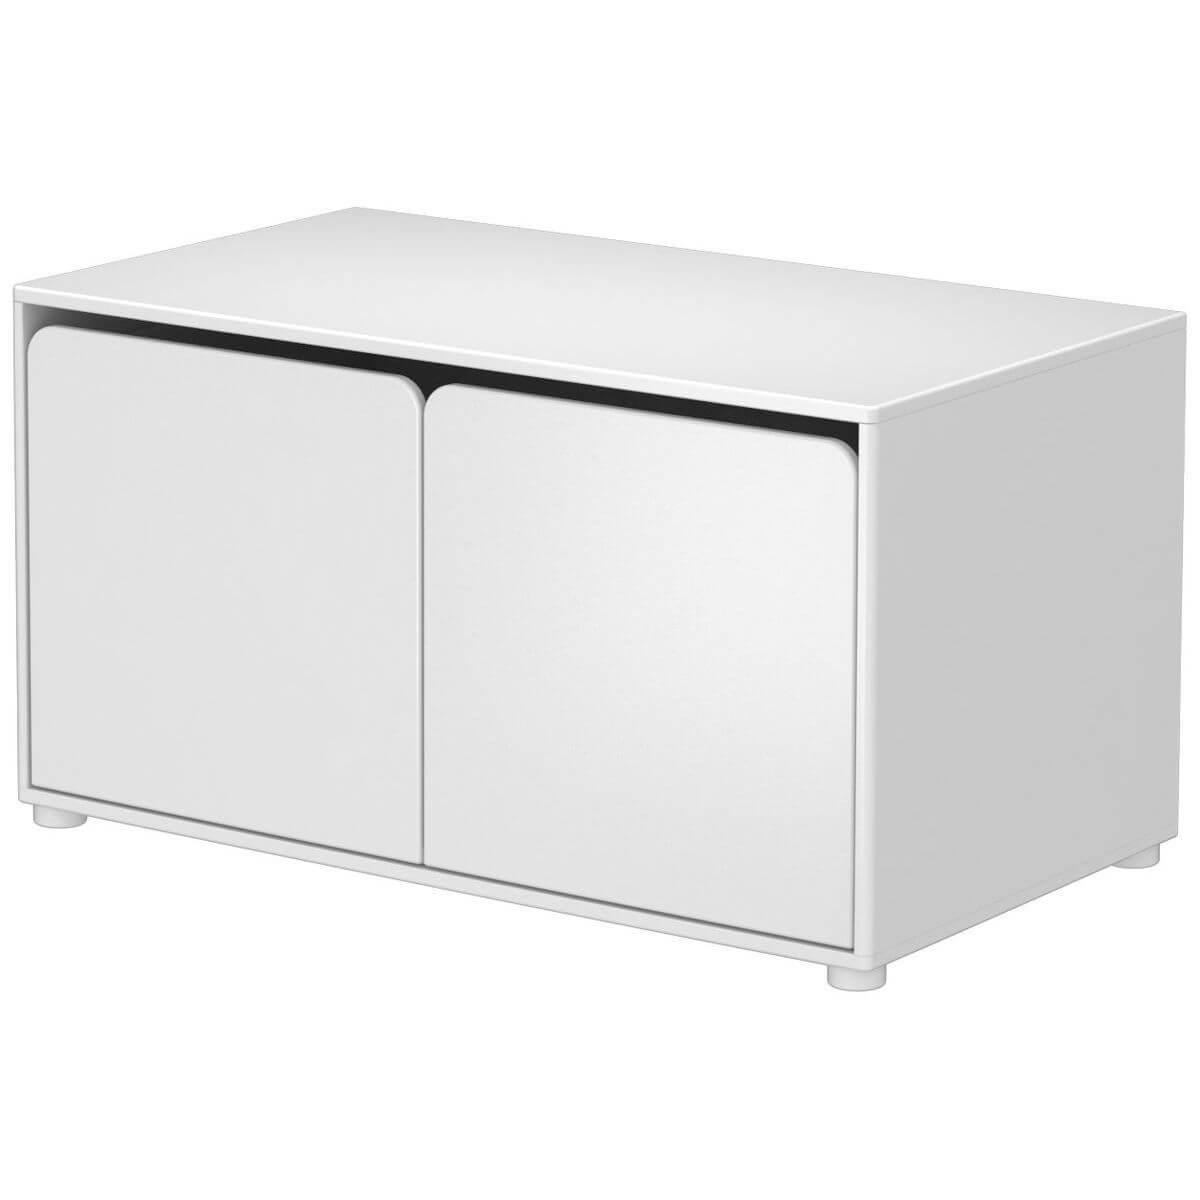 CABBY by Flexa Armoire basse 2 portes Blanc